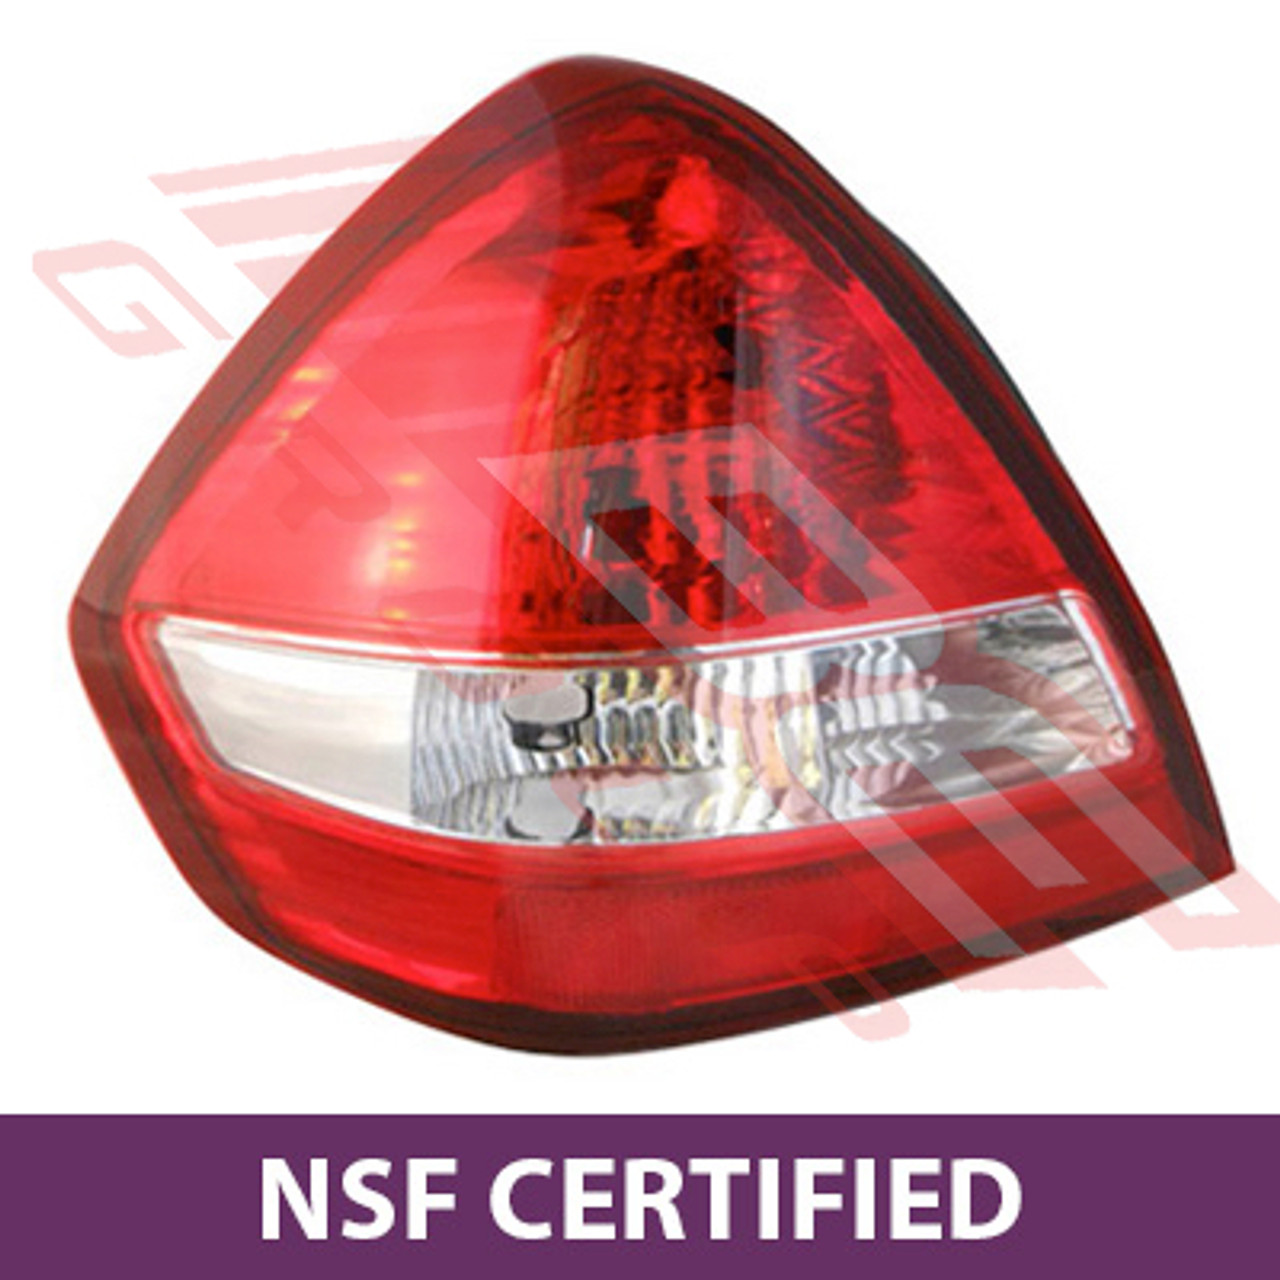 1601898-05CF - REAR LAMP - L/H - CLEAR PLASTIC (NO LINES) - CERTIFIED NSF  TO SUIT NISSAN TIIDA - SC11 - 4DR JAP F/LIFT & ALL NZ